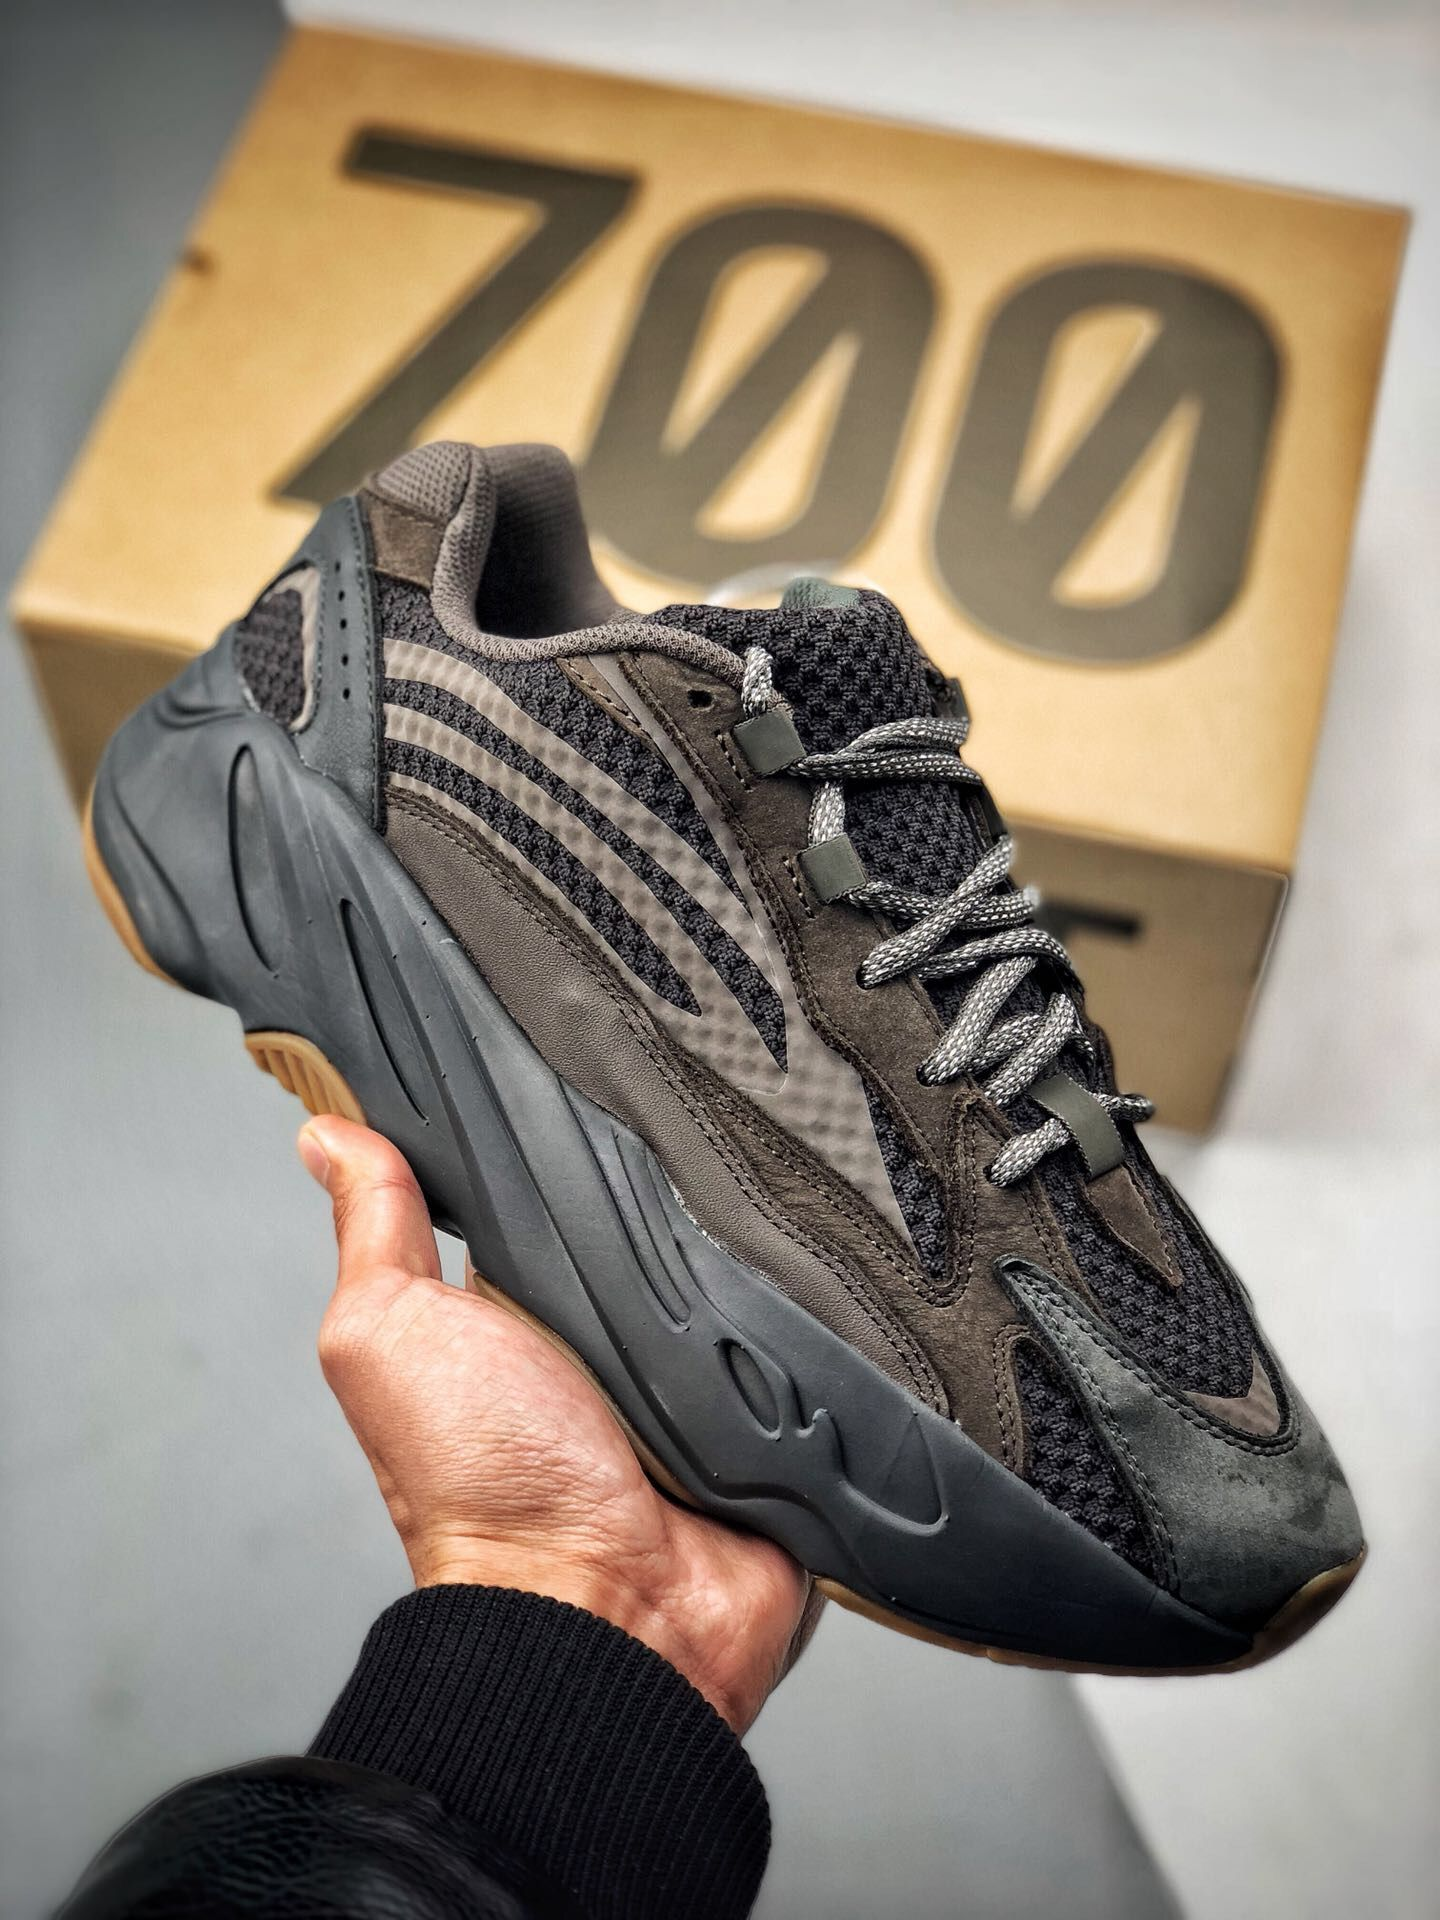 adidas Yeezy Boost 700 V2 Geode EG6860 Release Date SBD